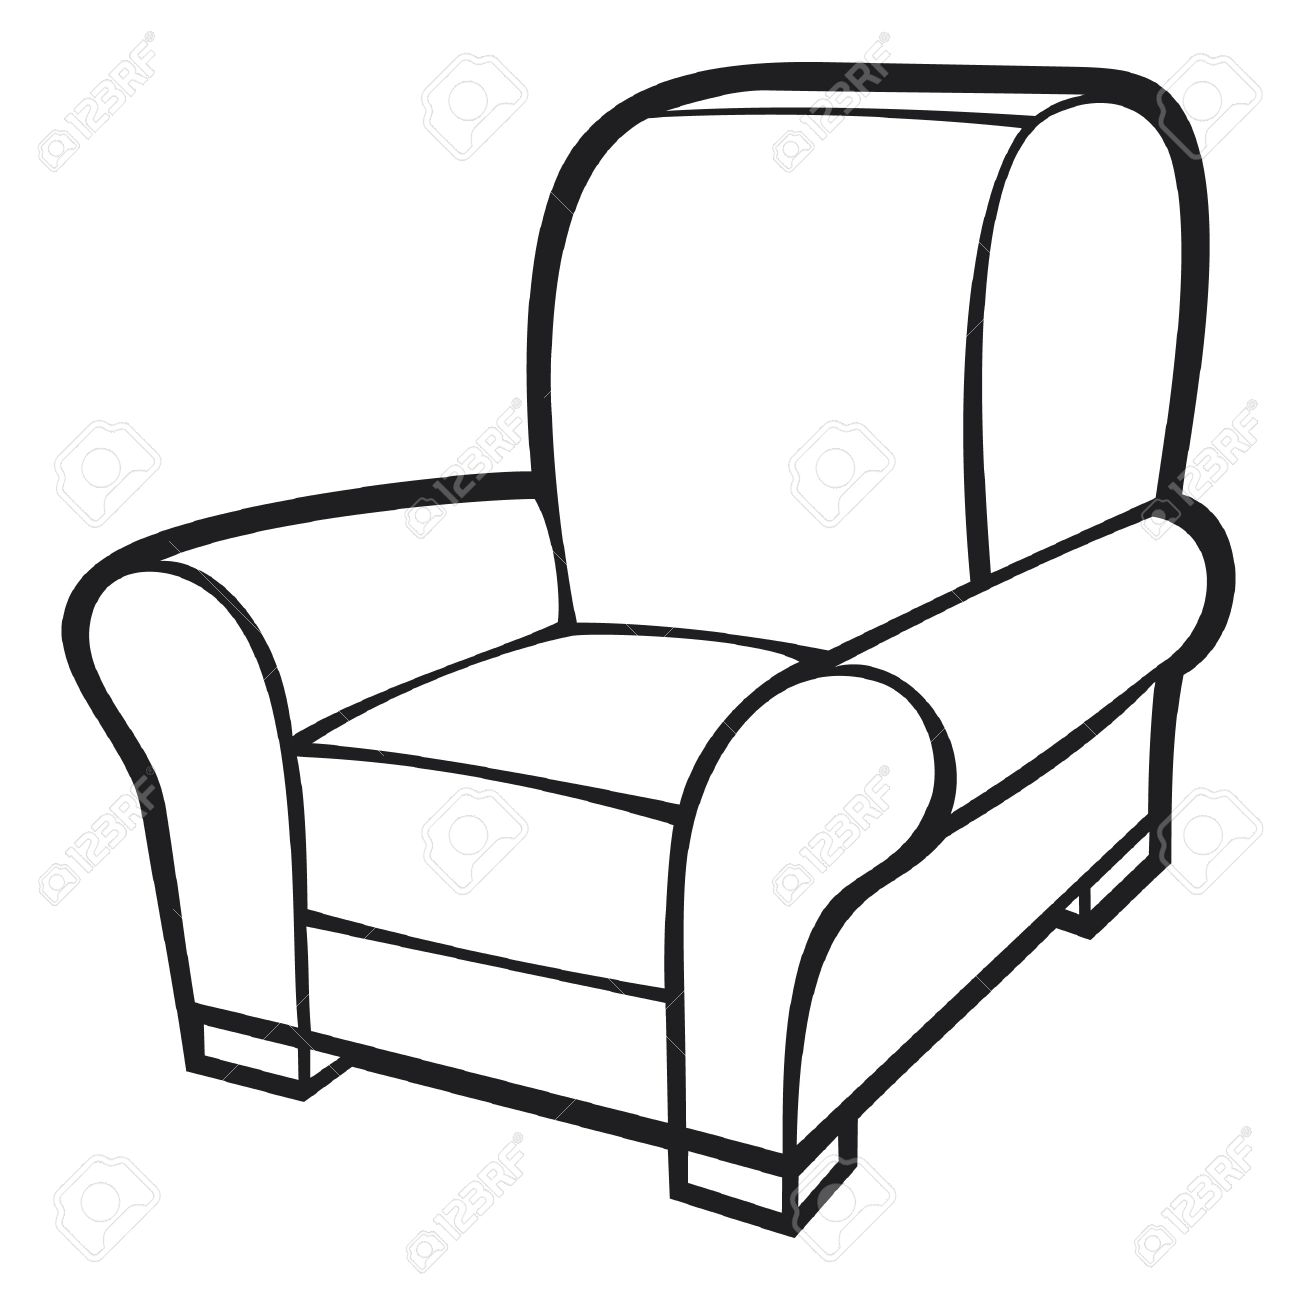 Sofa Chair Clipart Clip art of Chair Clipart #3953 — Clipartwork.